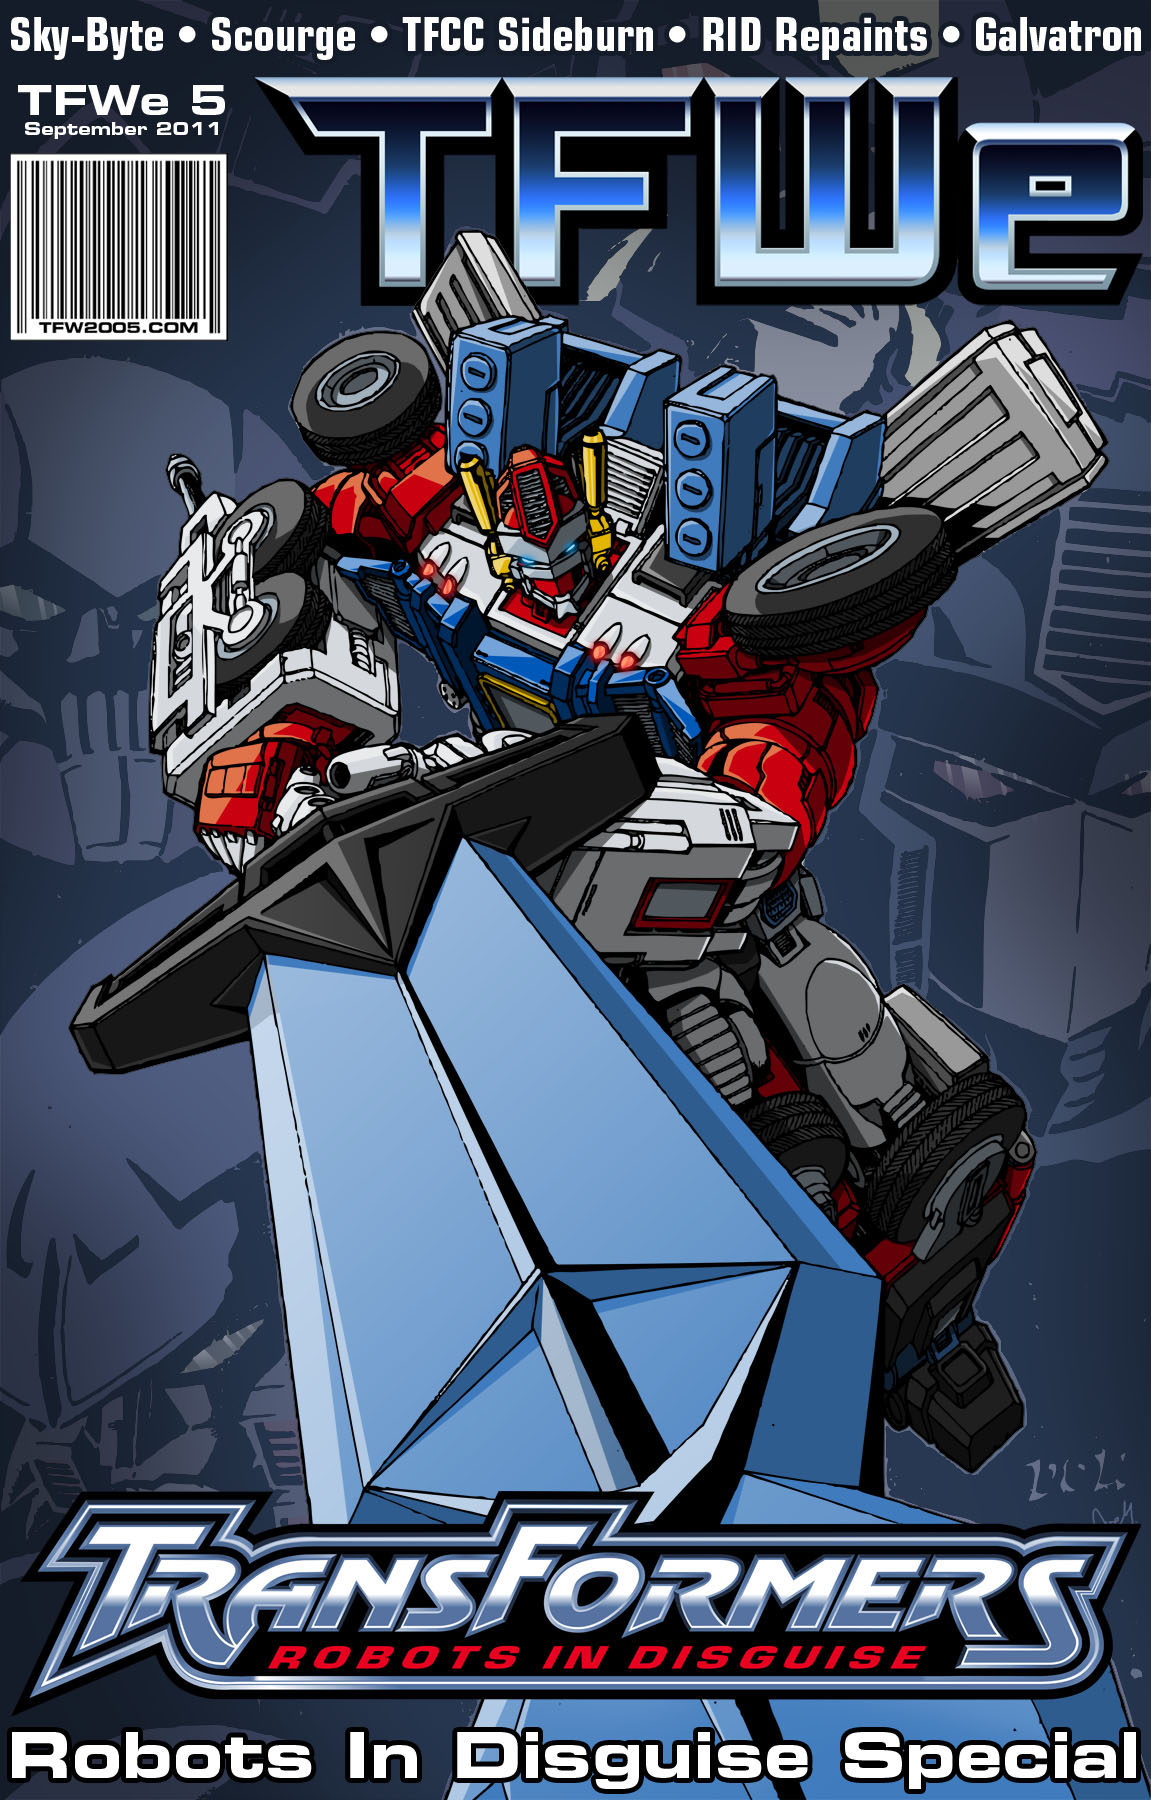 Hasbro-Transformers-Robots-In-Disguise-Trademark-TV-Series-Video-Game-Toy-Line